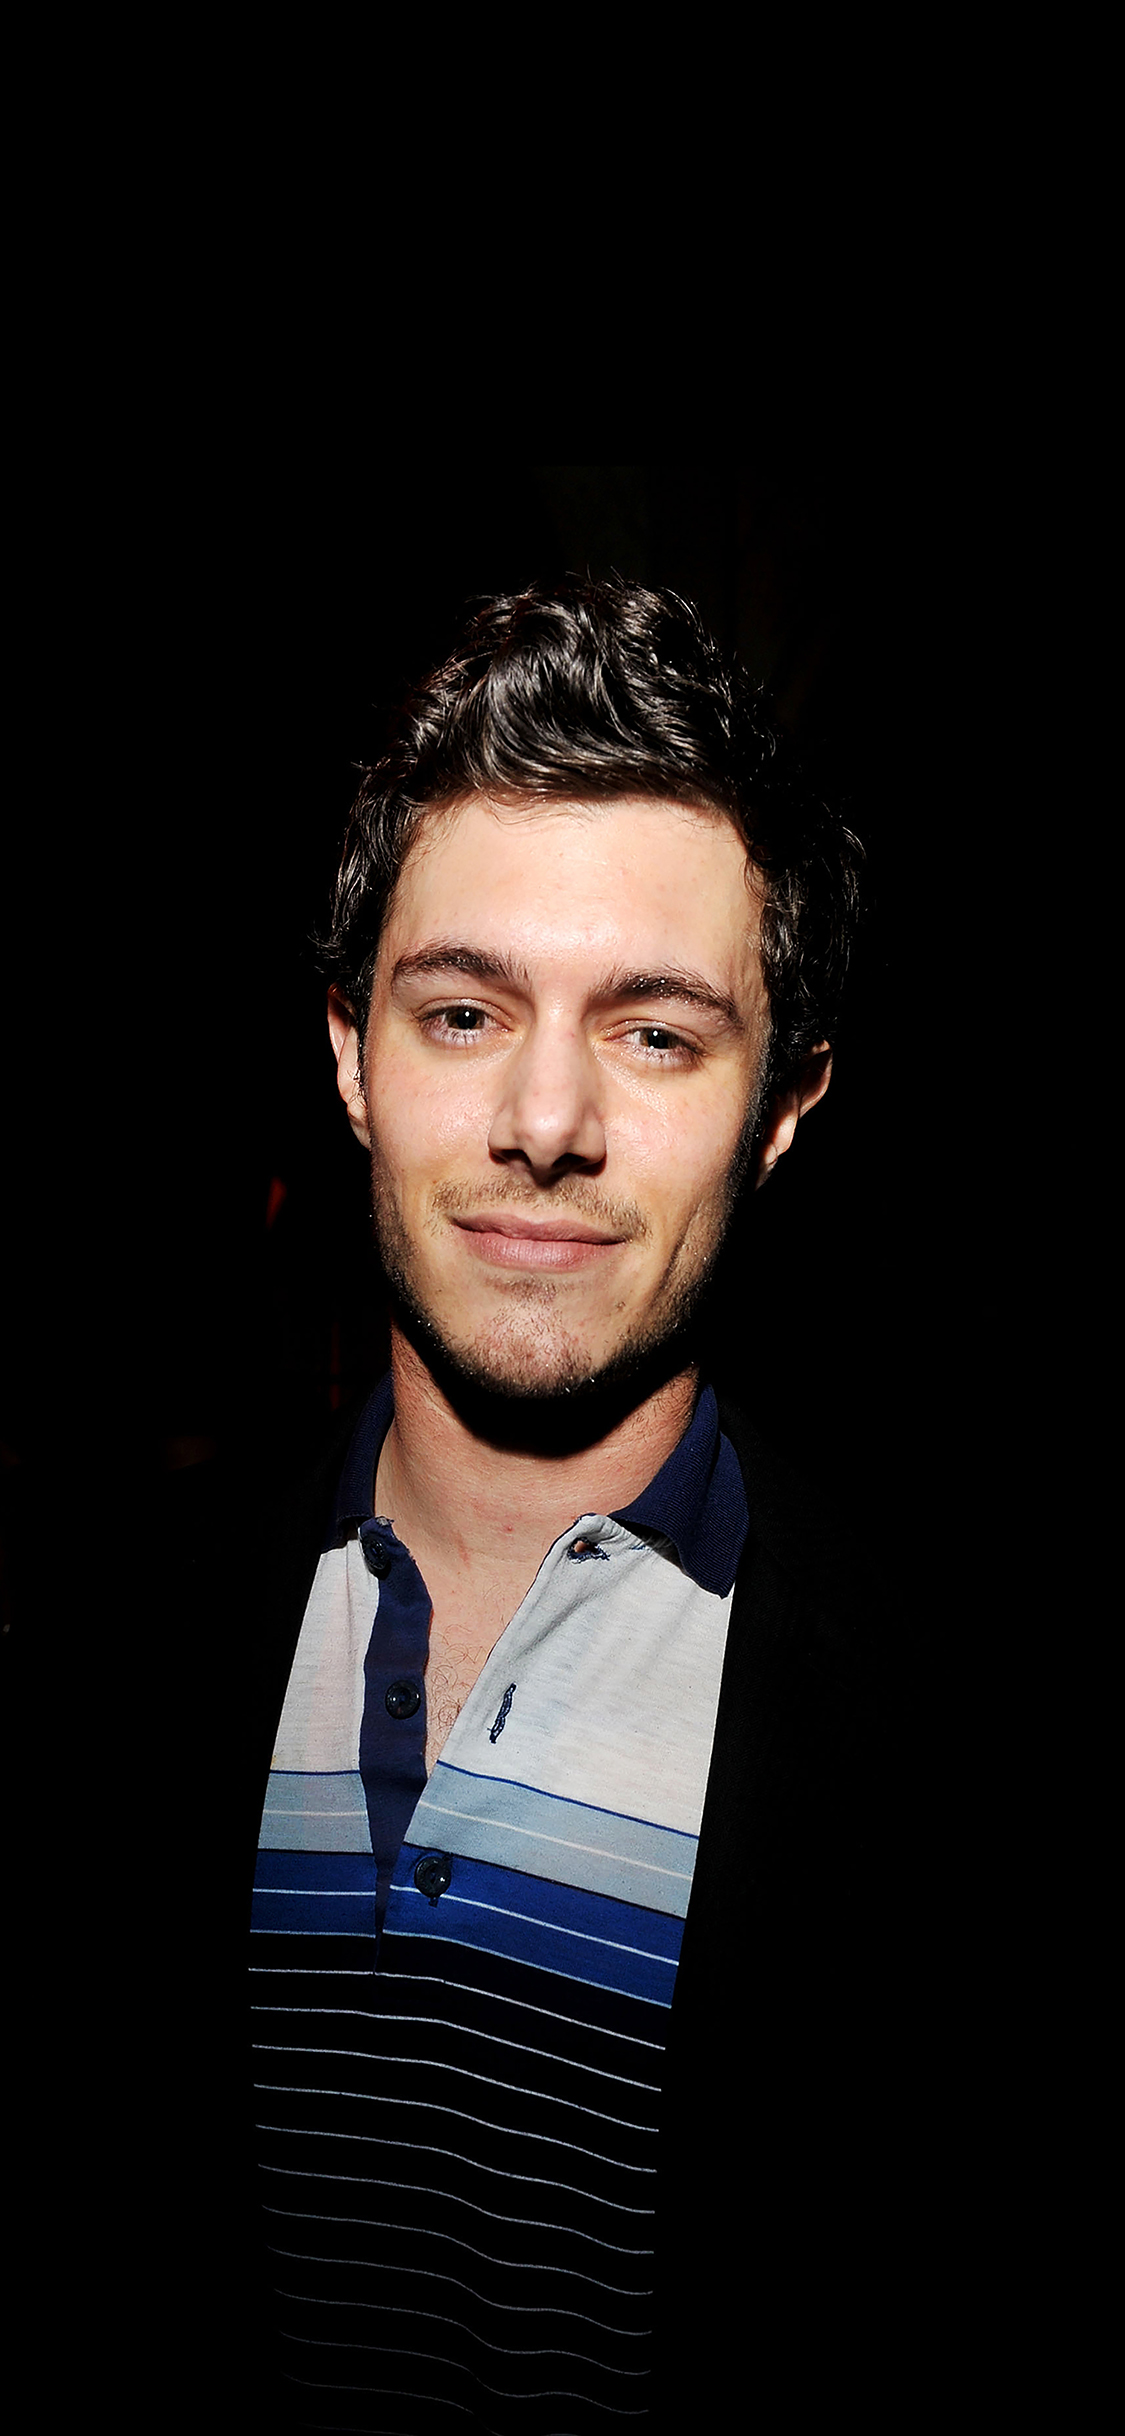 iPhoneXpapers.com-Apple-iPhone-wallpaper-hd46-adam-brody-handsome-actor-celebrity